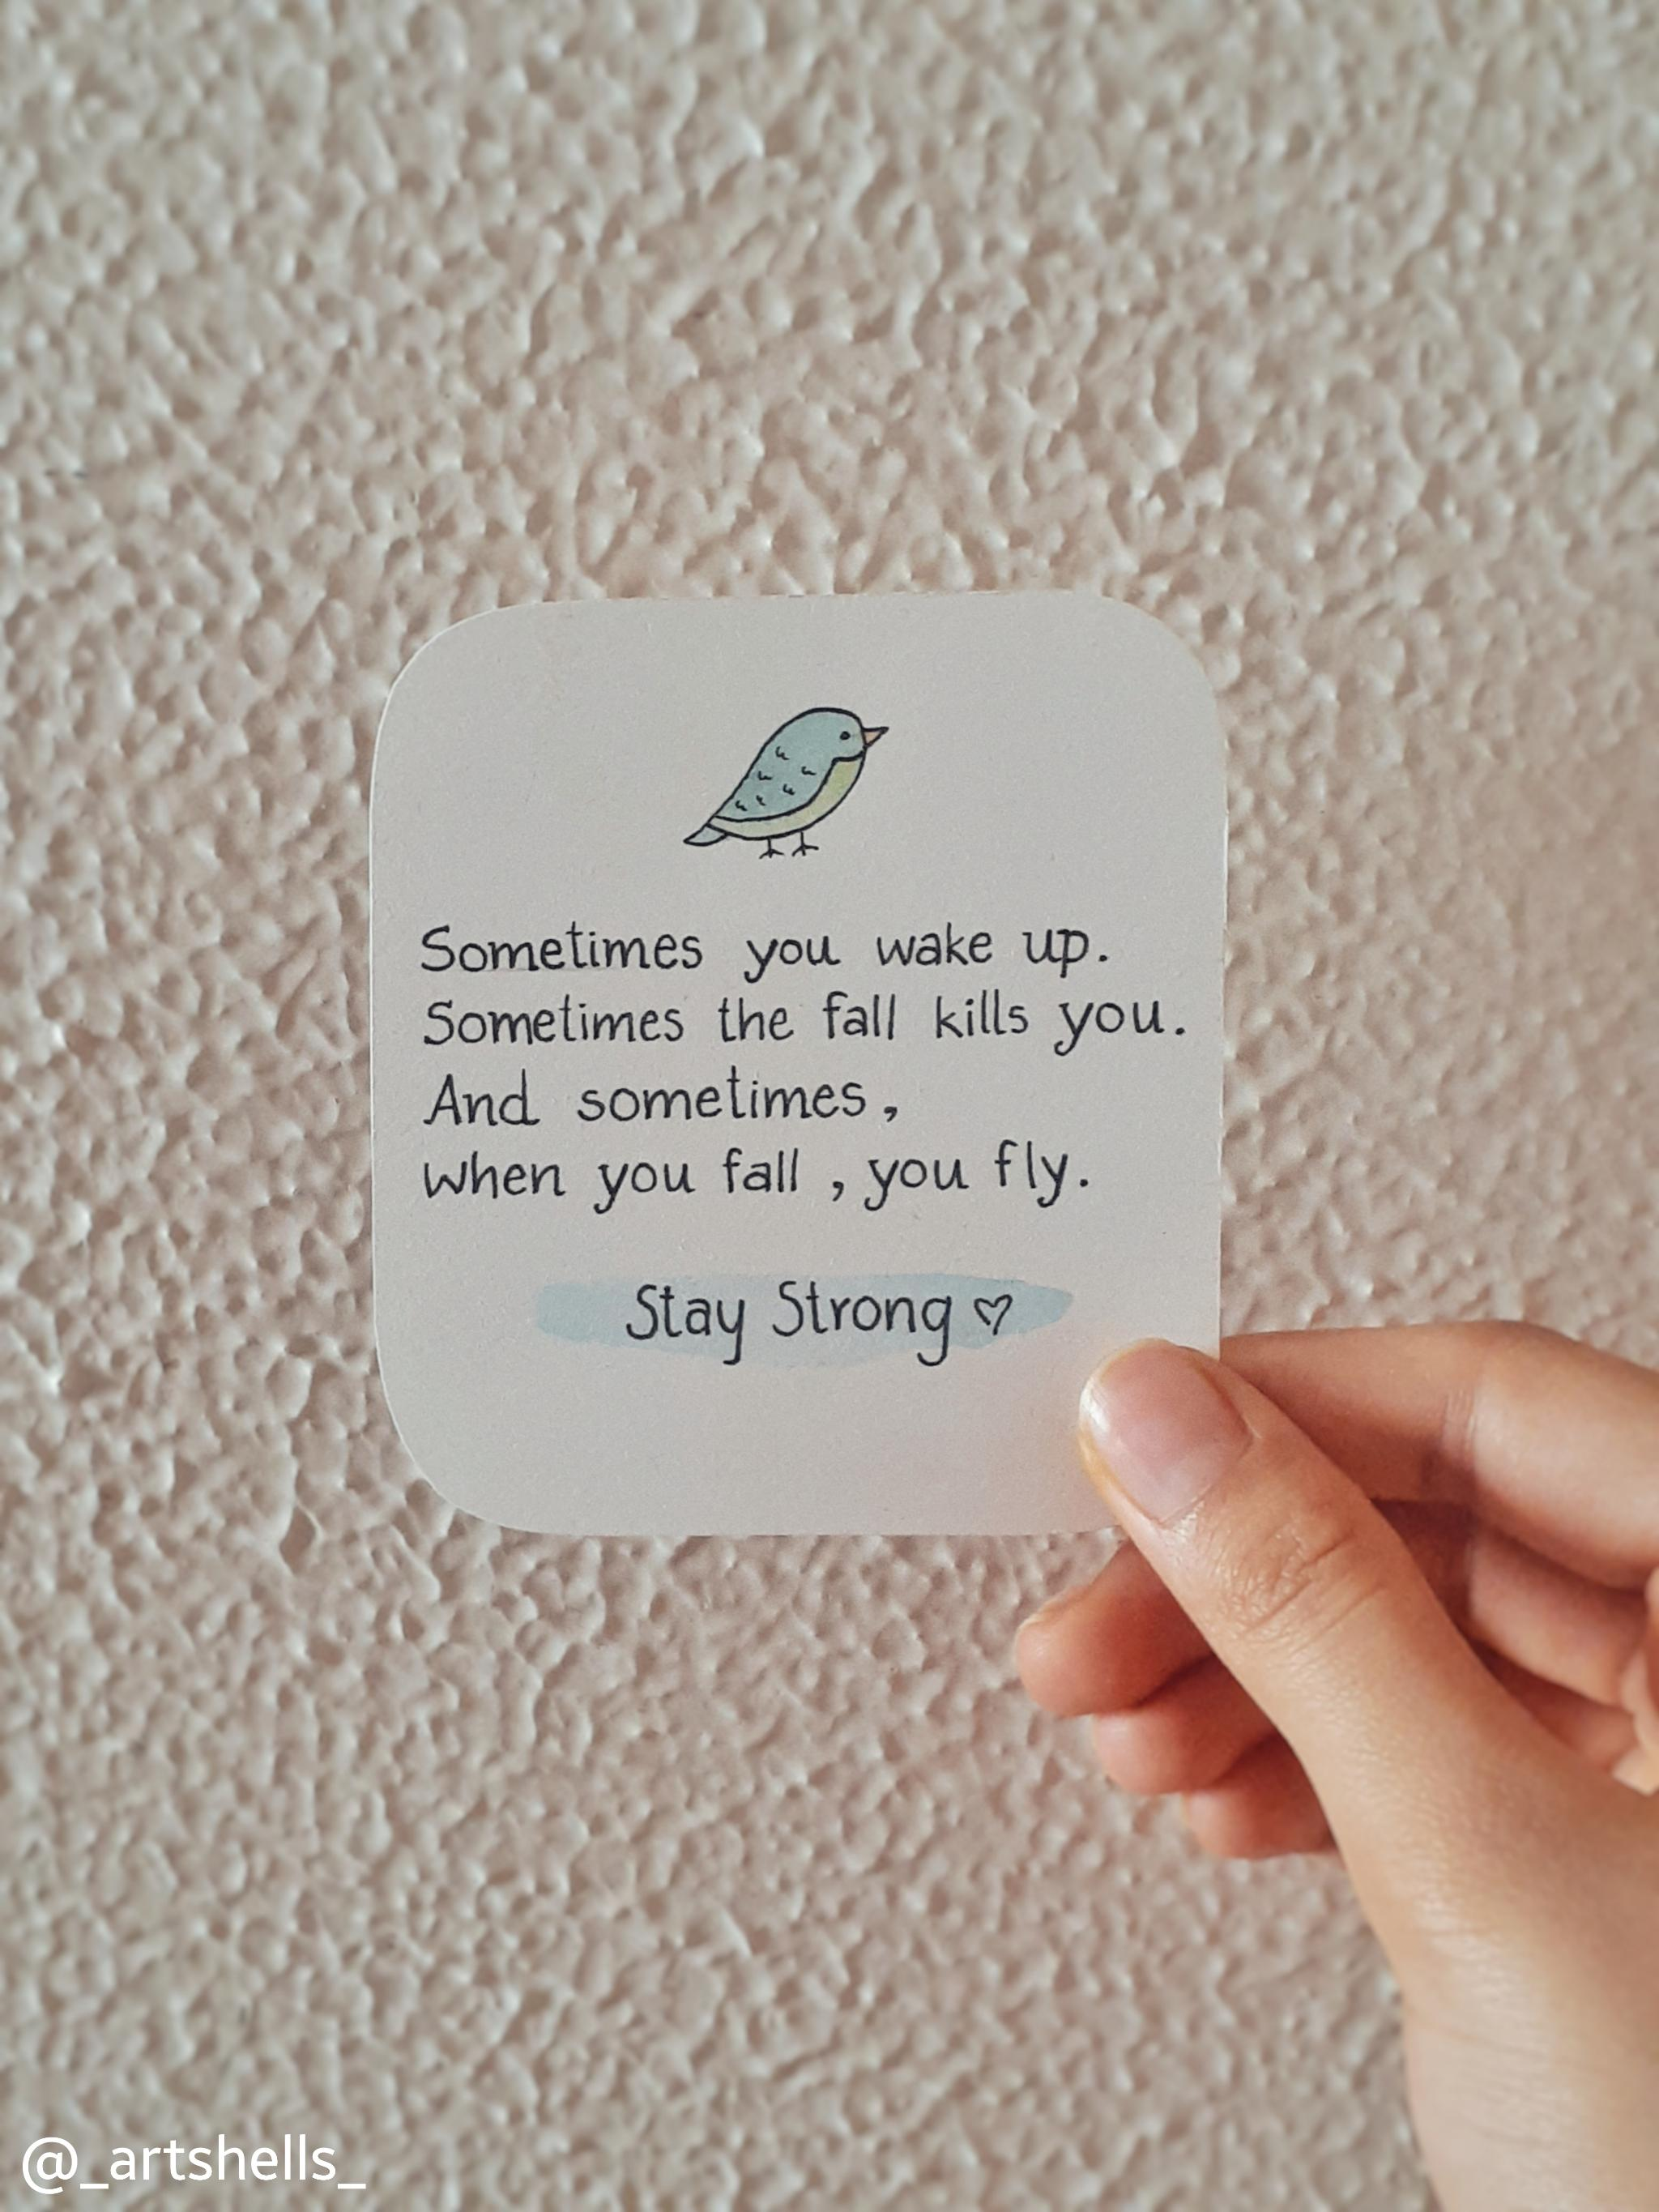 Sometimes you wake up. Sometimes the fall kills you. And sometimes, when you fall, you fly. – By Neil Gaiman. [2730 ×2048]